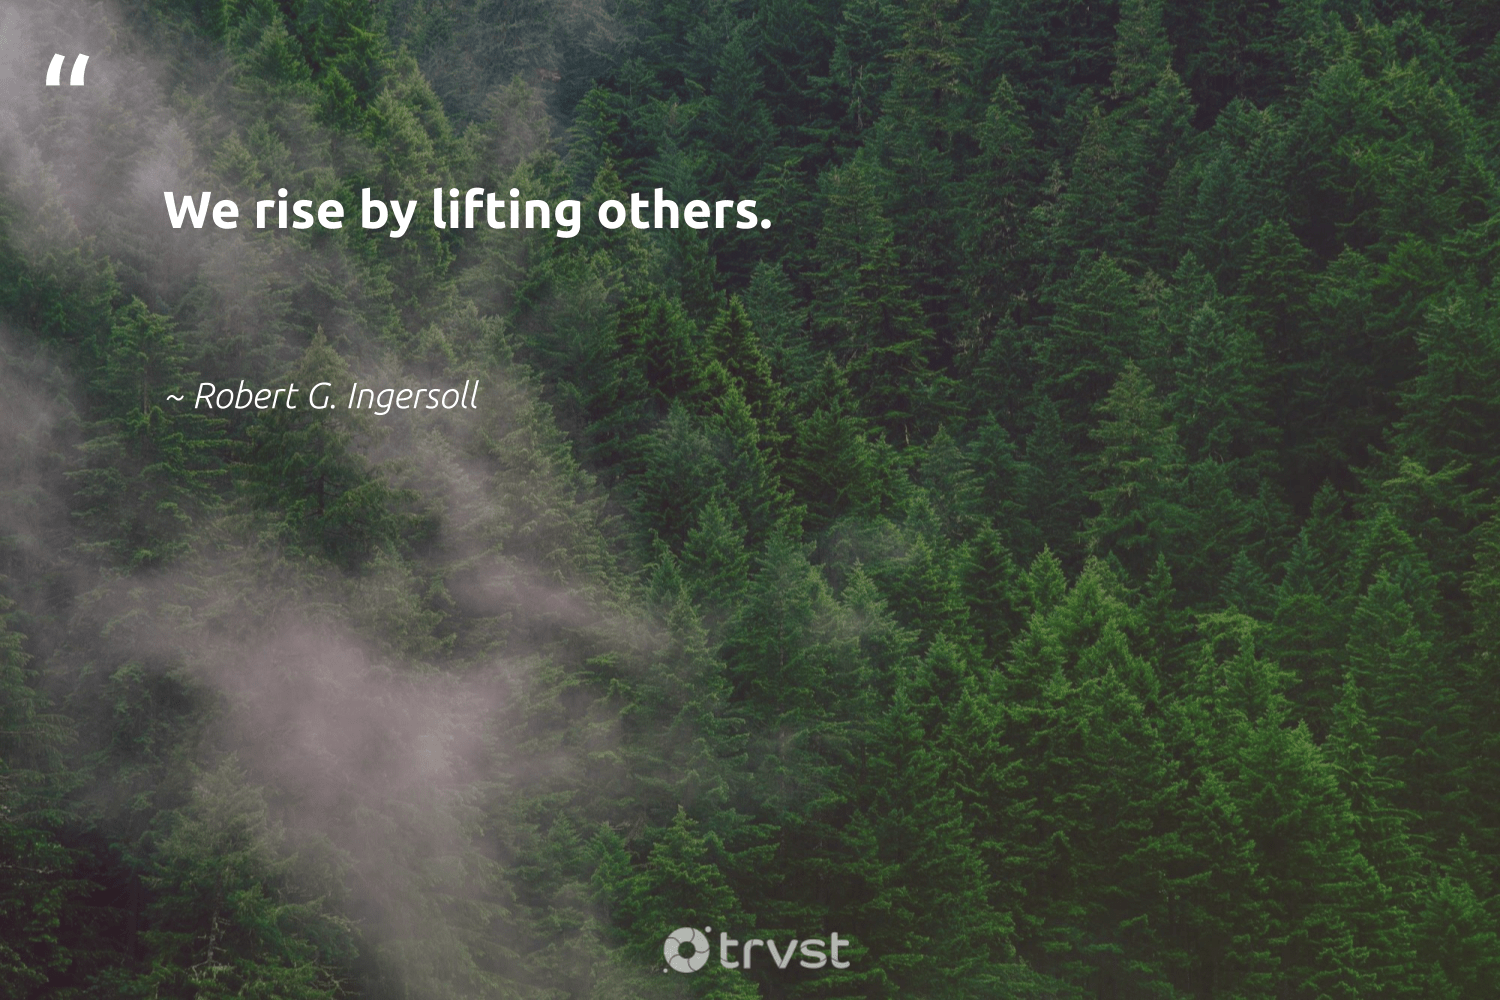 """""""We rise by lifting others.""""  - Robert G. Ingersoll #trvst #quotes #giveback #socialchange #bethechange #beinspired #dogood #impact #equalopportunity #socialimpact #weareallone #takeaction"""